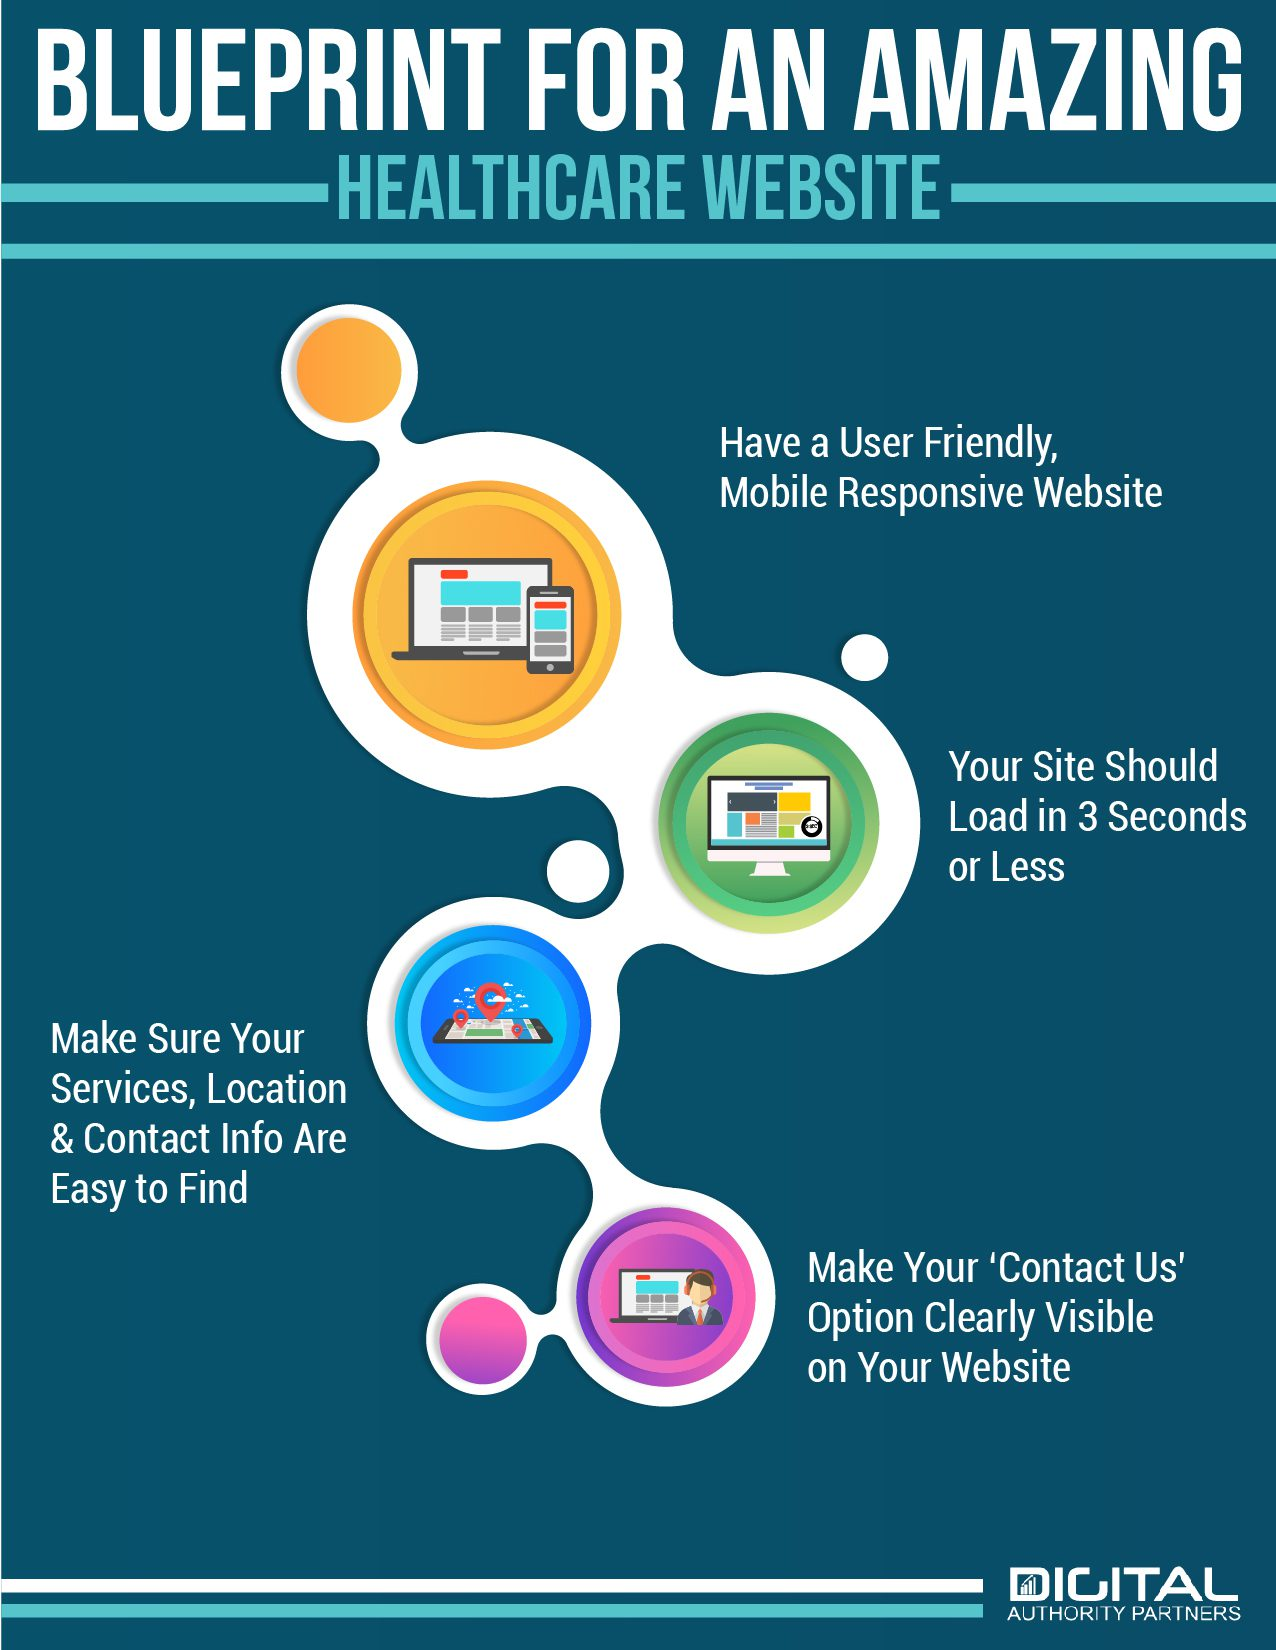 infographic listing elements of a good healthcare marketing website